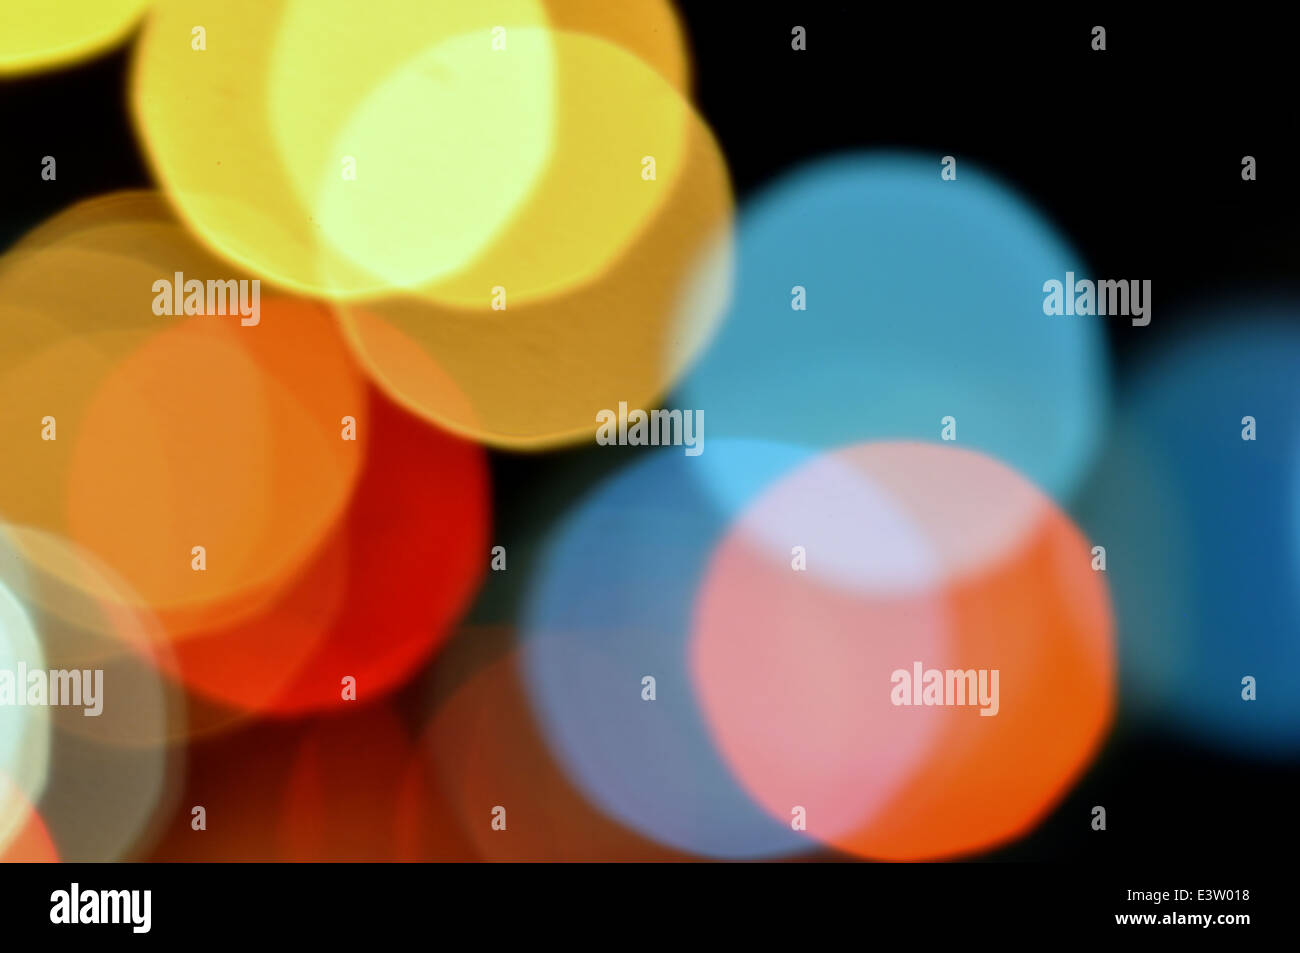 Abstract blurry lights at night colorful circles background. Stock Photo